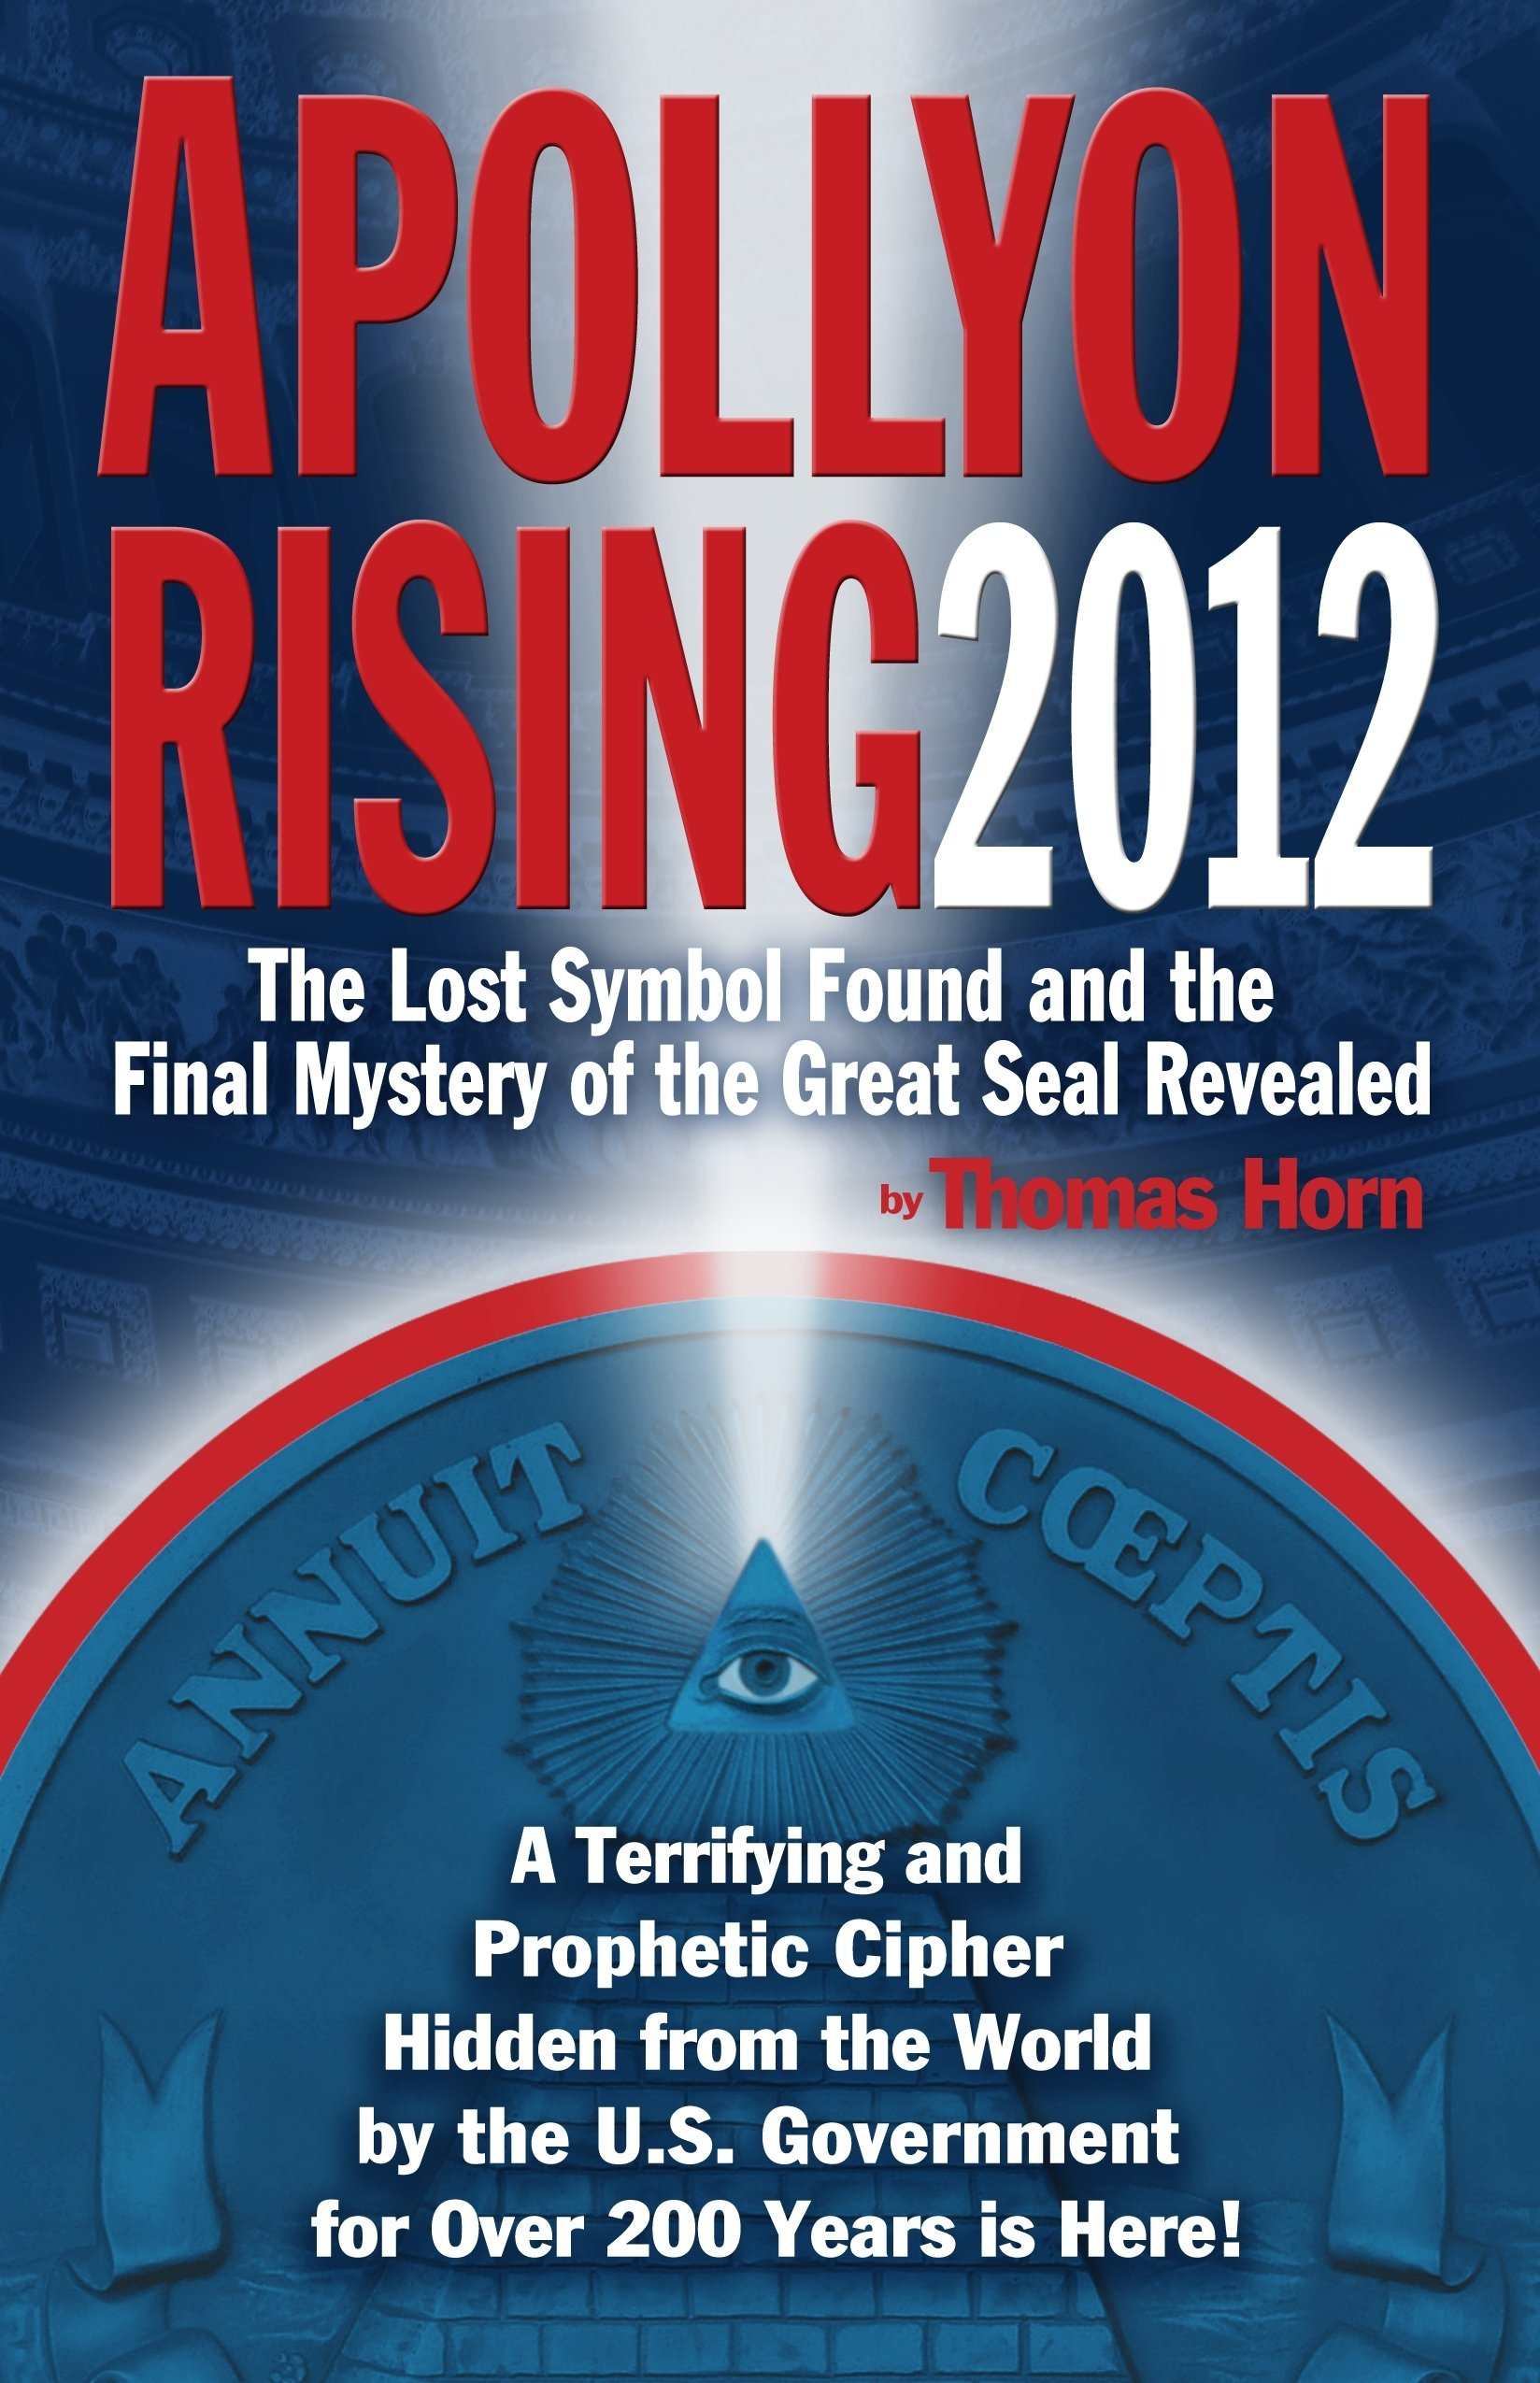 Apollyon rising 2012 the lost symbol found and the final mystery apollyon rising 2012 the lost symbol found and the final mystery of the great seal revealed thomas horn 9780982323564 amazon books buycottarizona